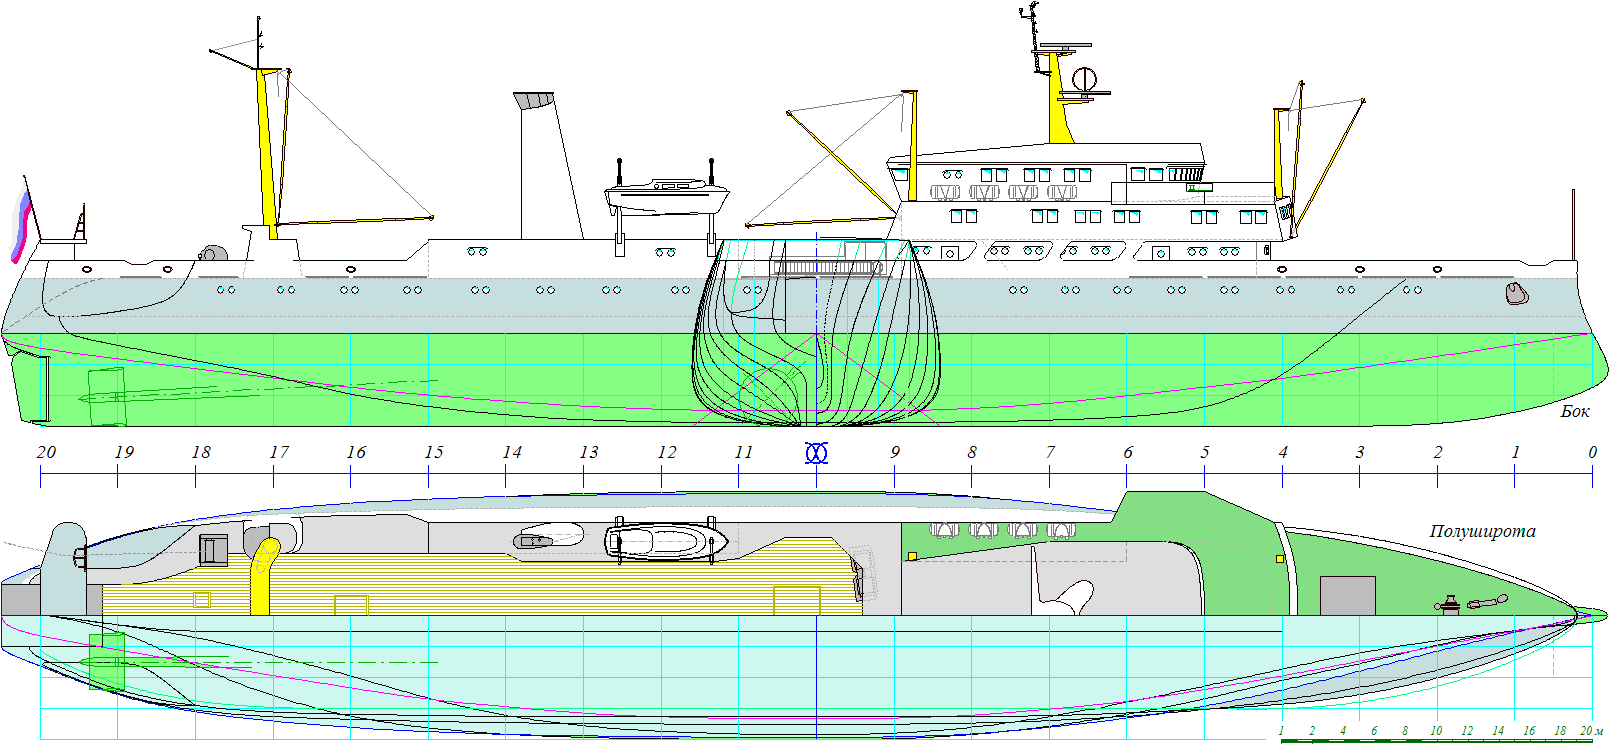 Cruise drawing ship construction. Shipdesign for aphydro issw